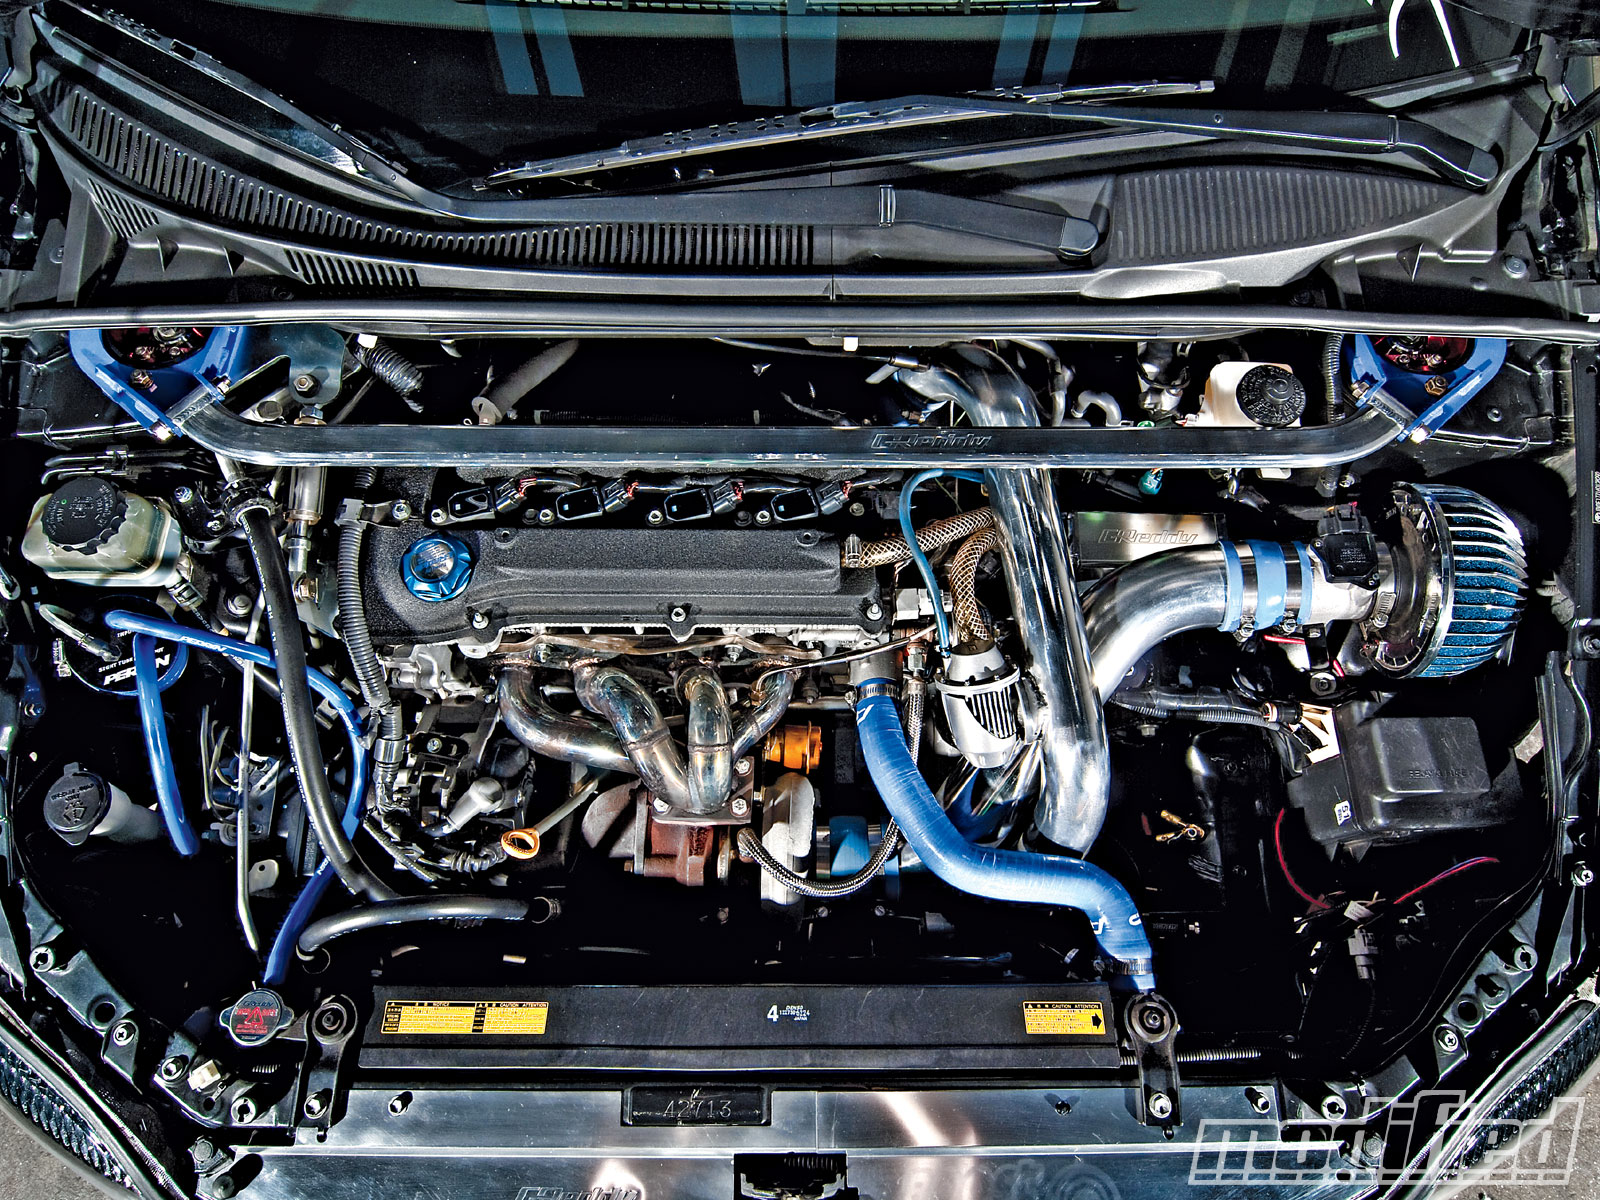 Scion tC engine #3